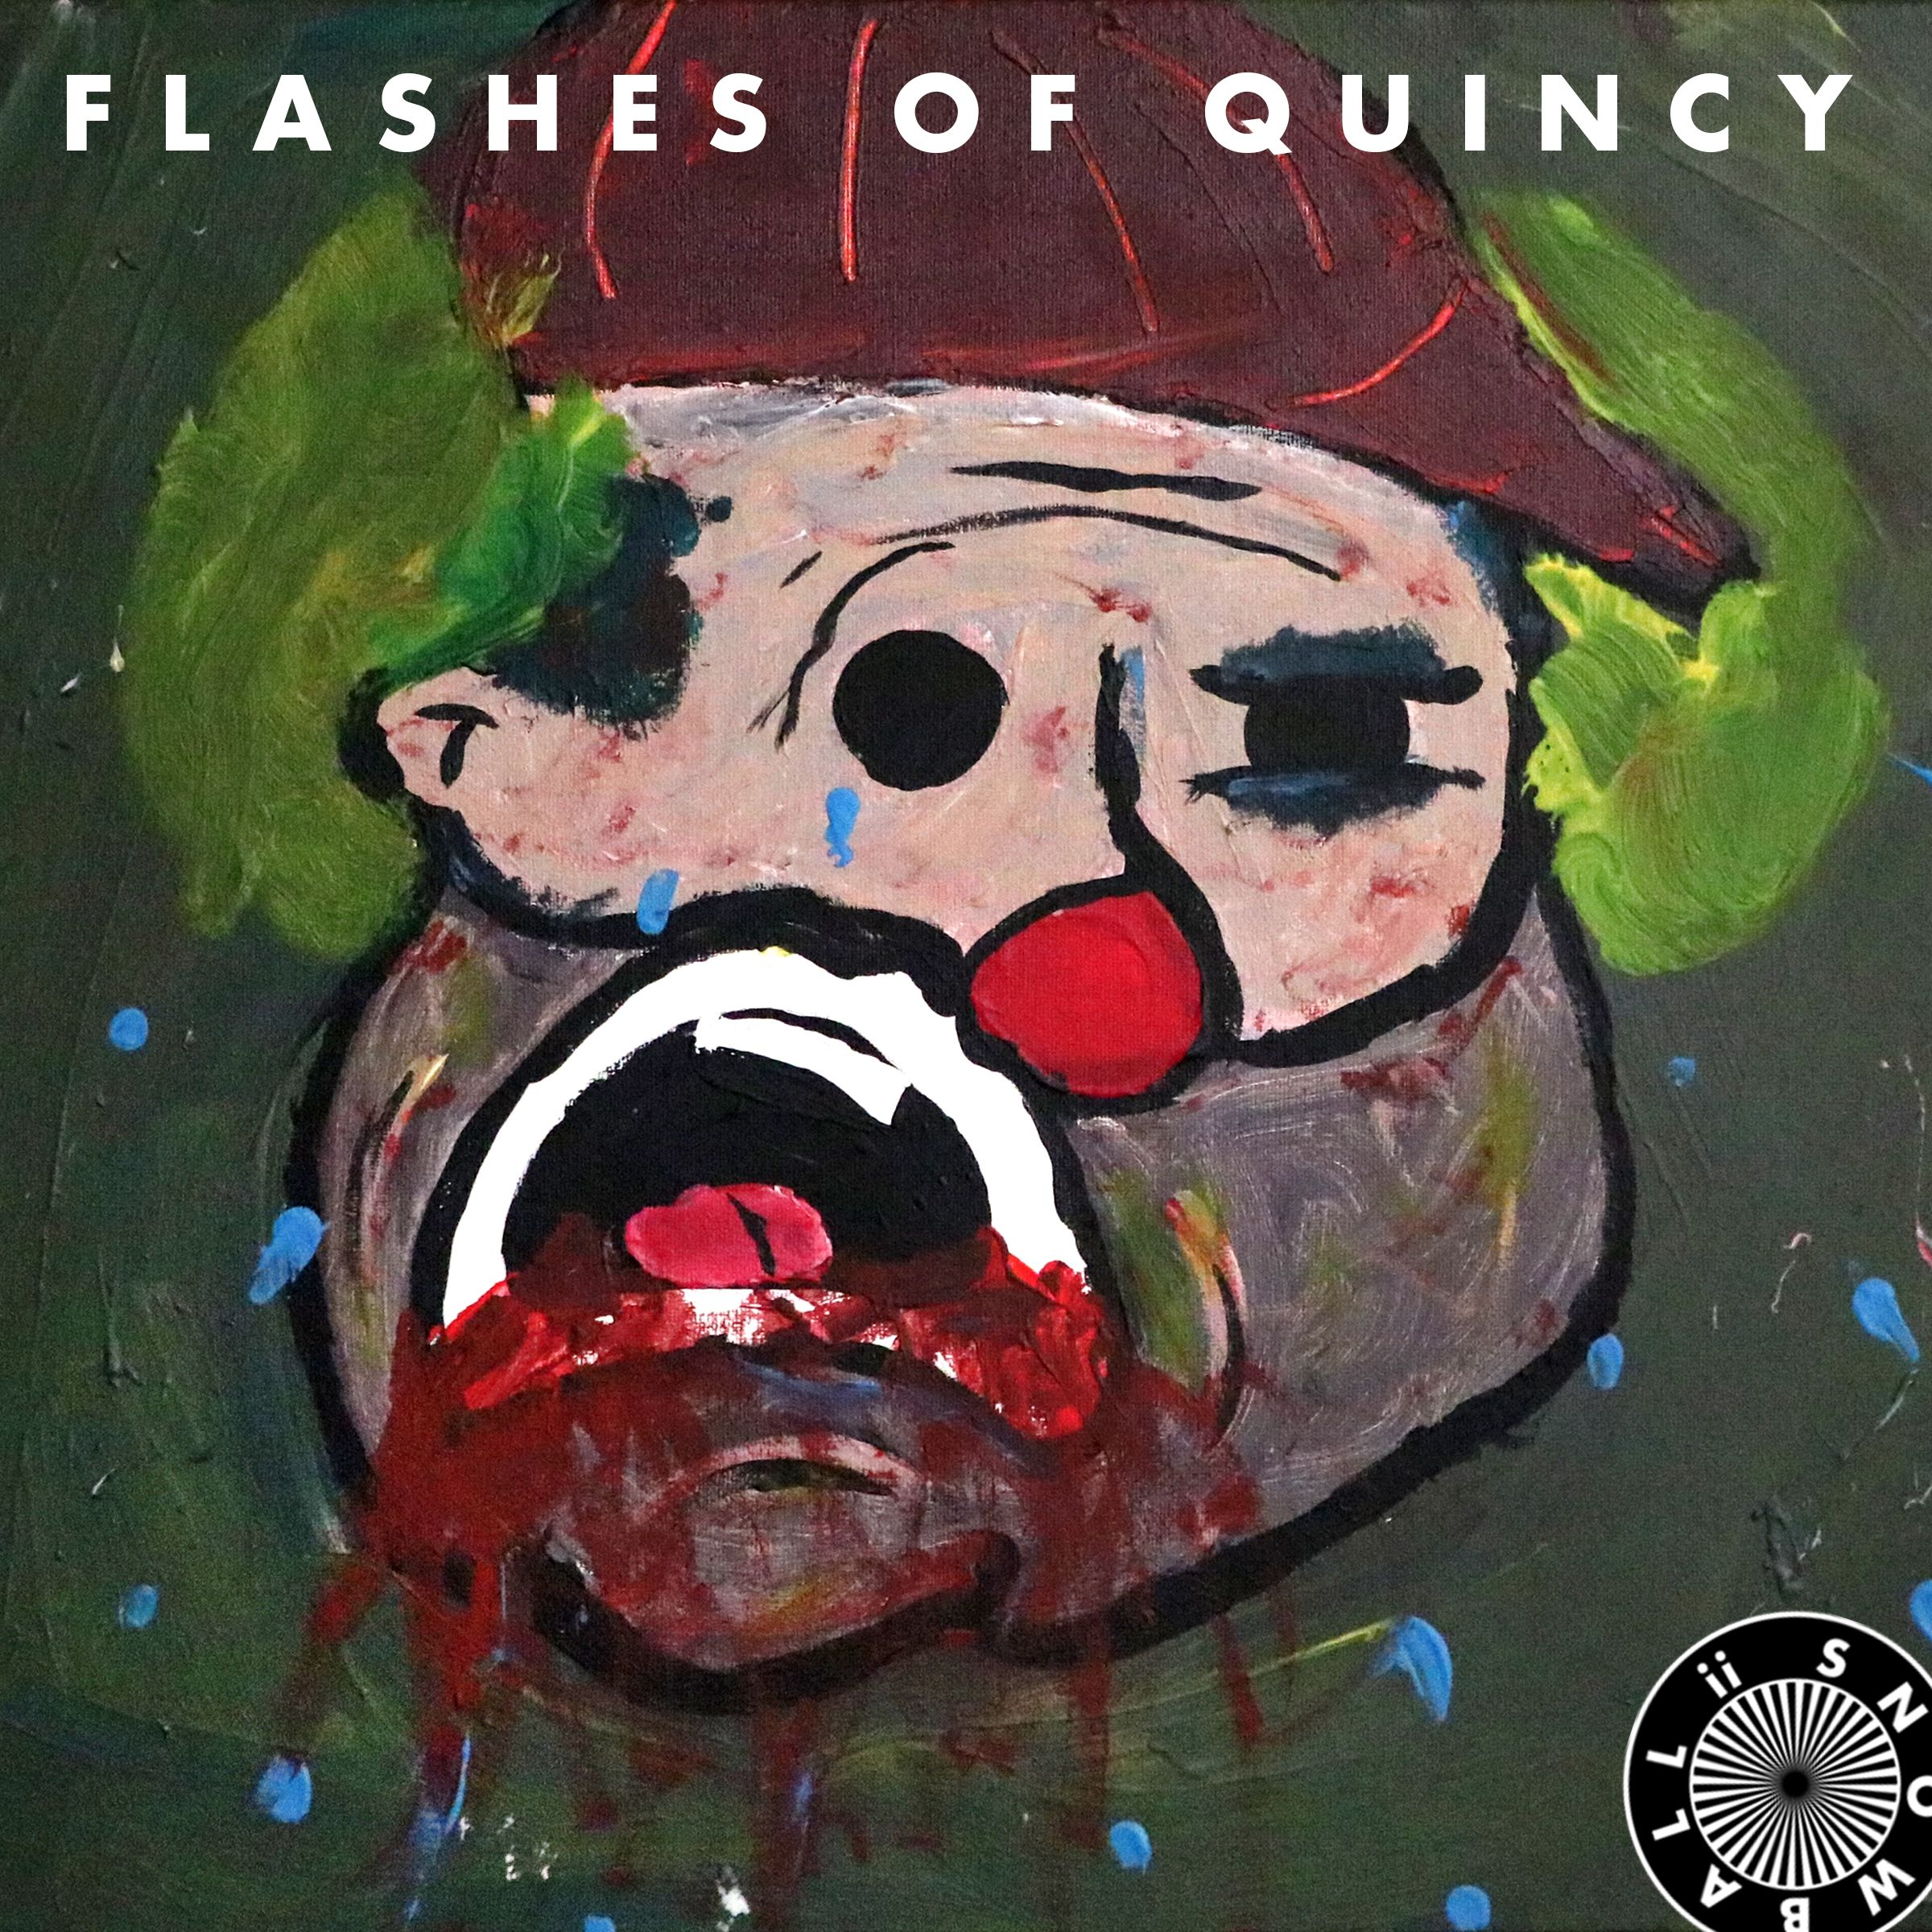 Snowball II - Flashes of Quincy